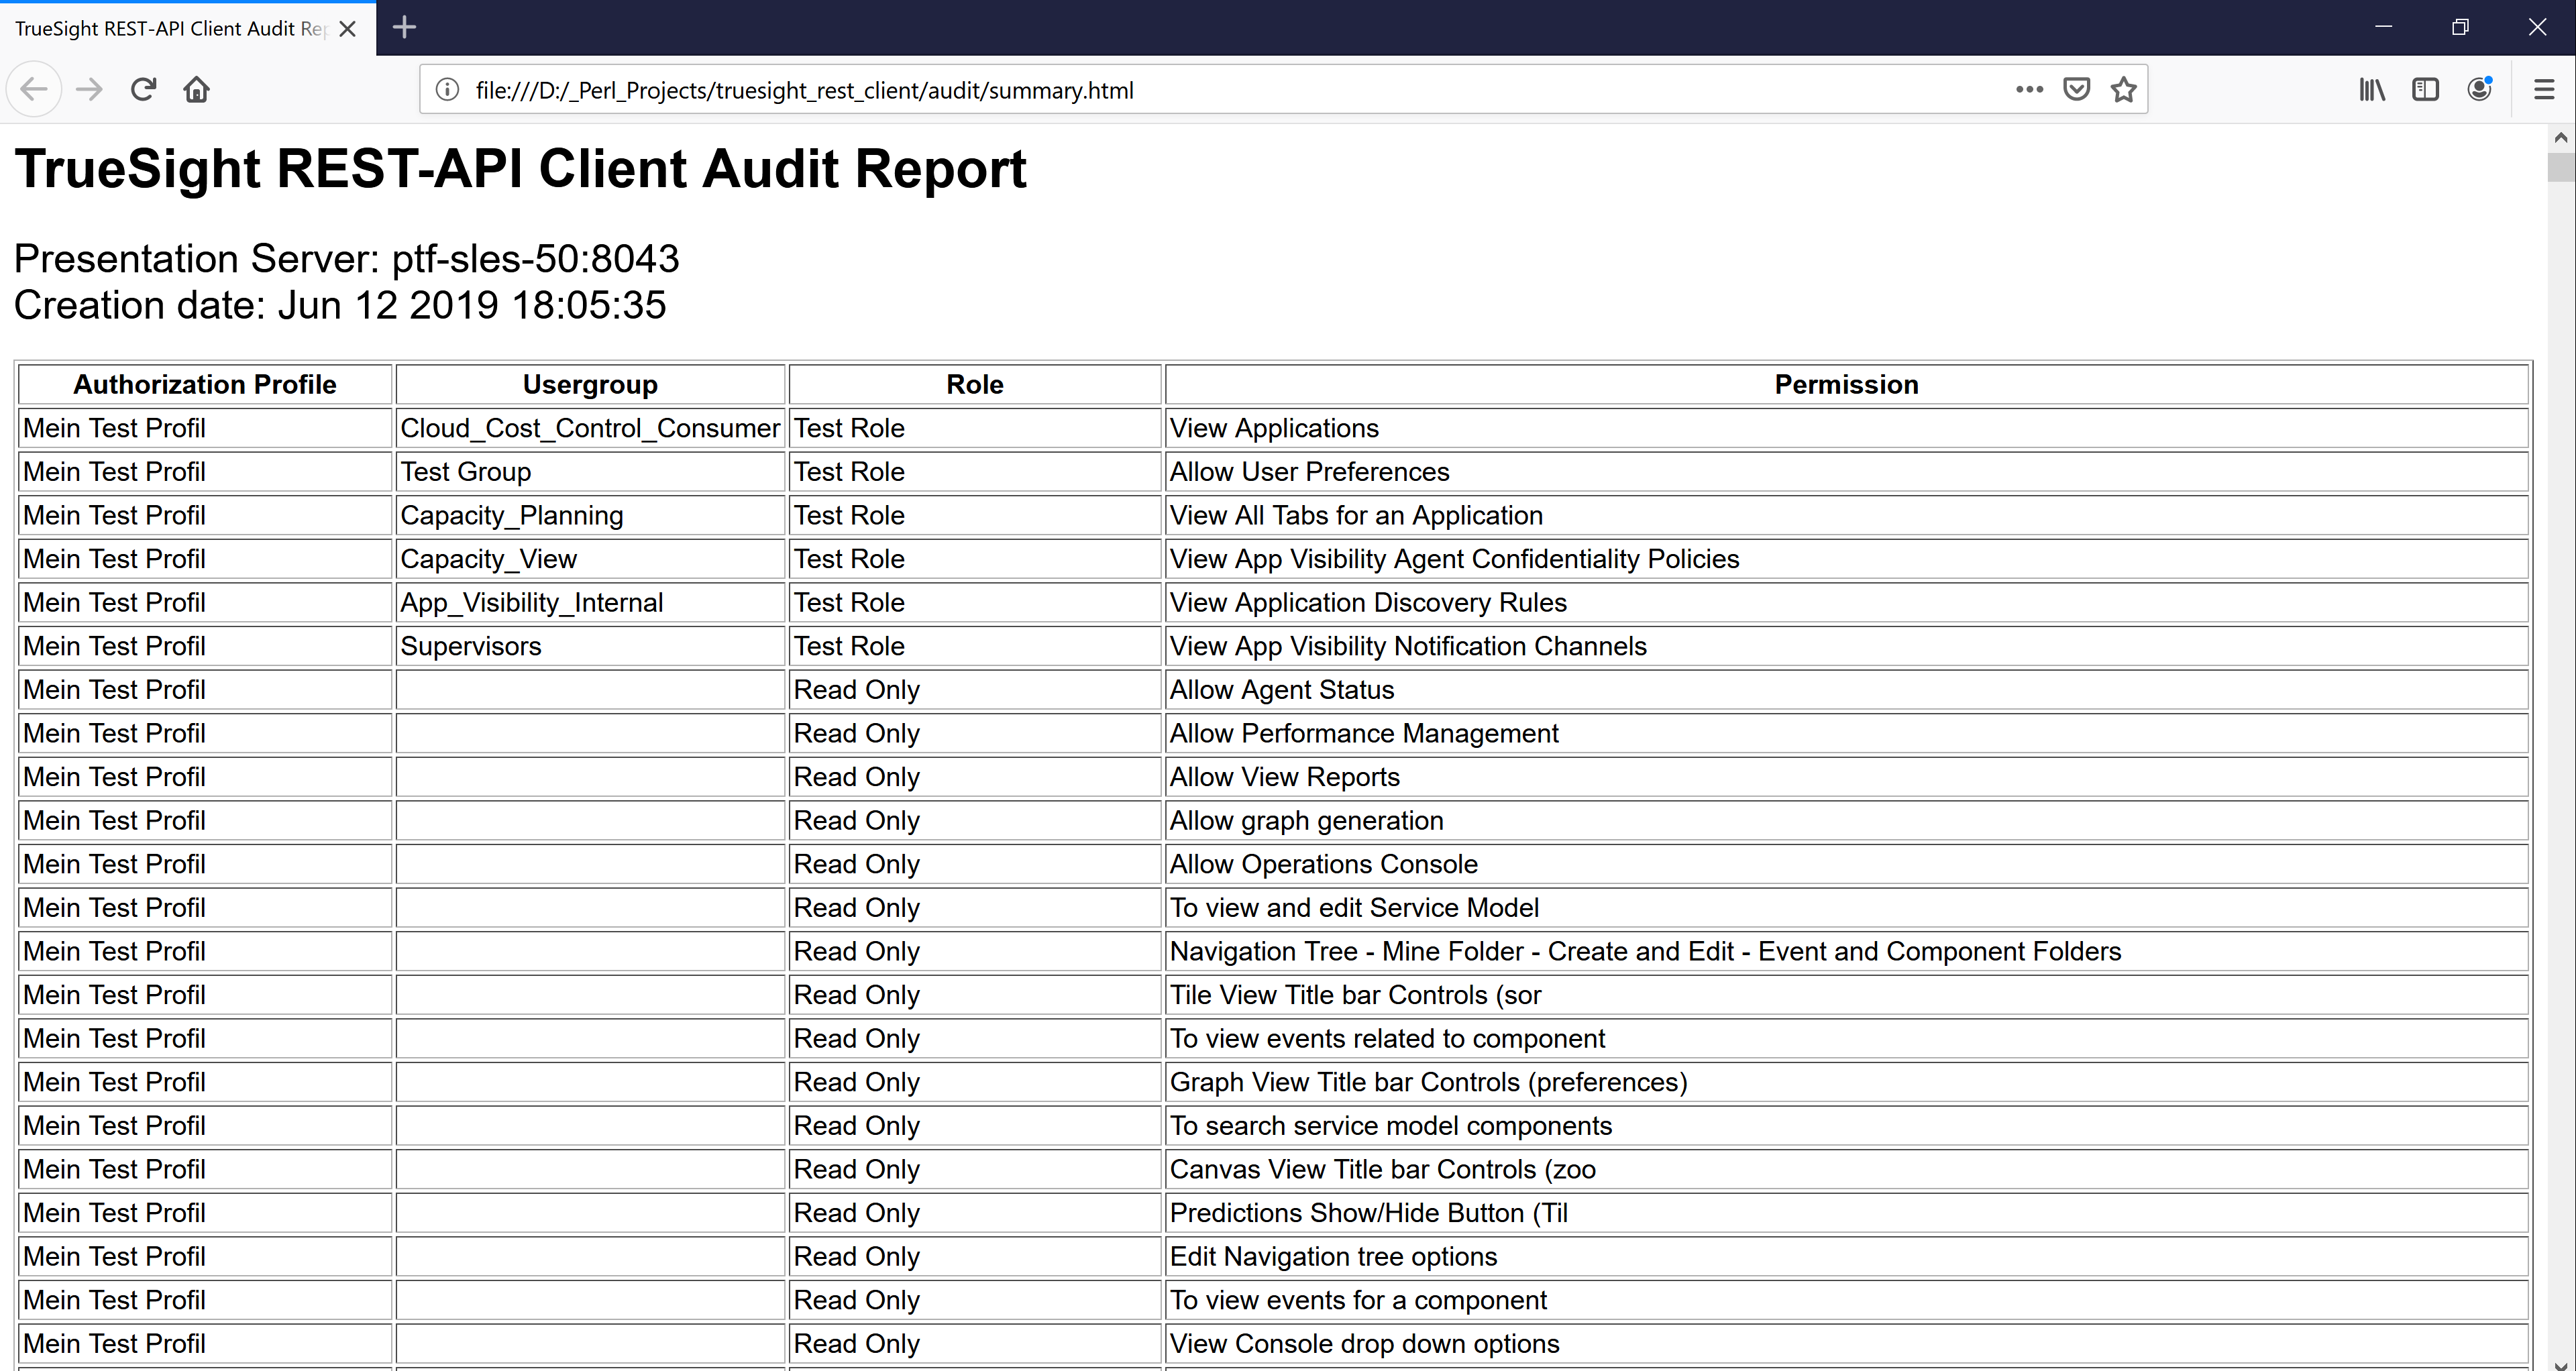 traudit HTML Audit Report (command: traudit)